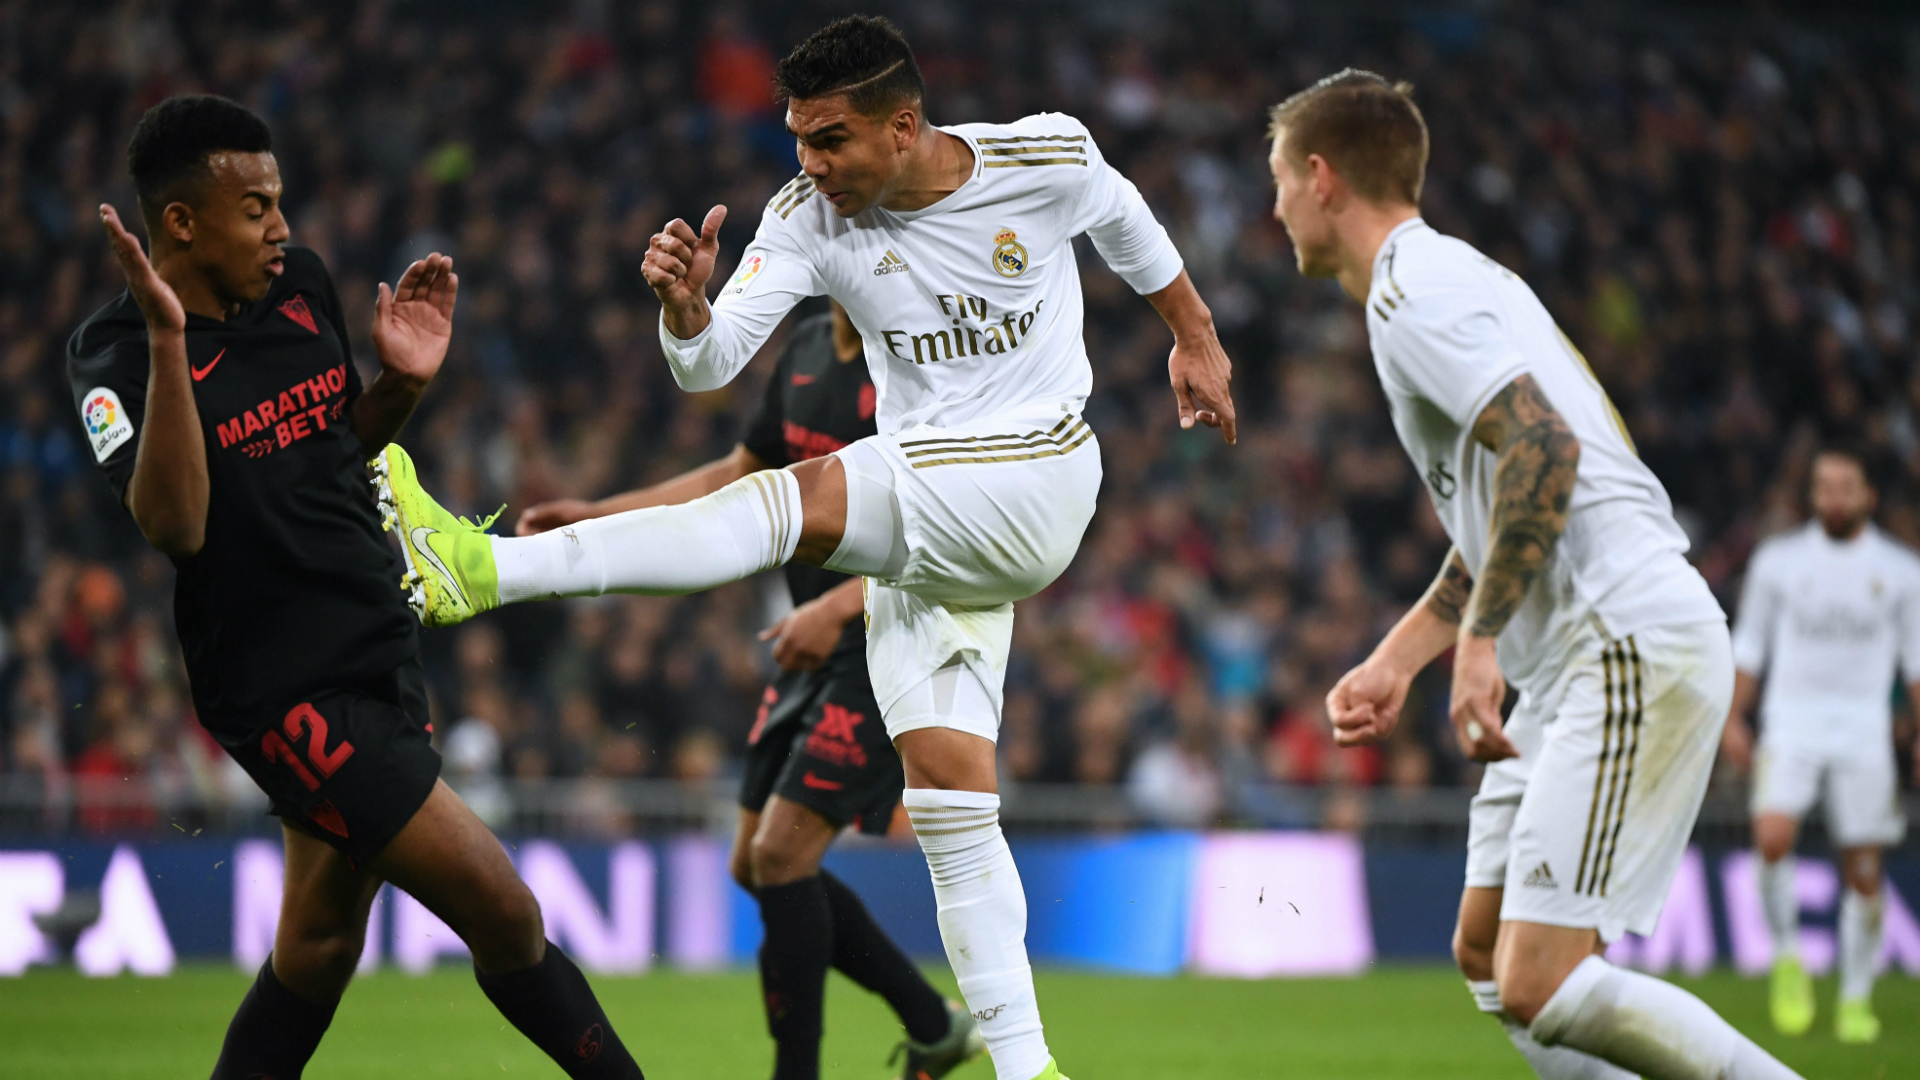 Sevilla's target is to qualify for the Champions League – Jules Kounde